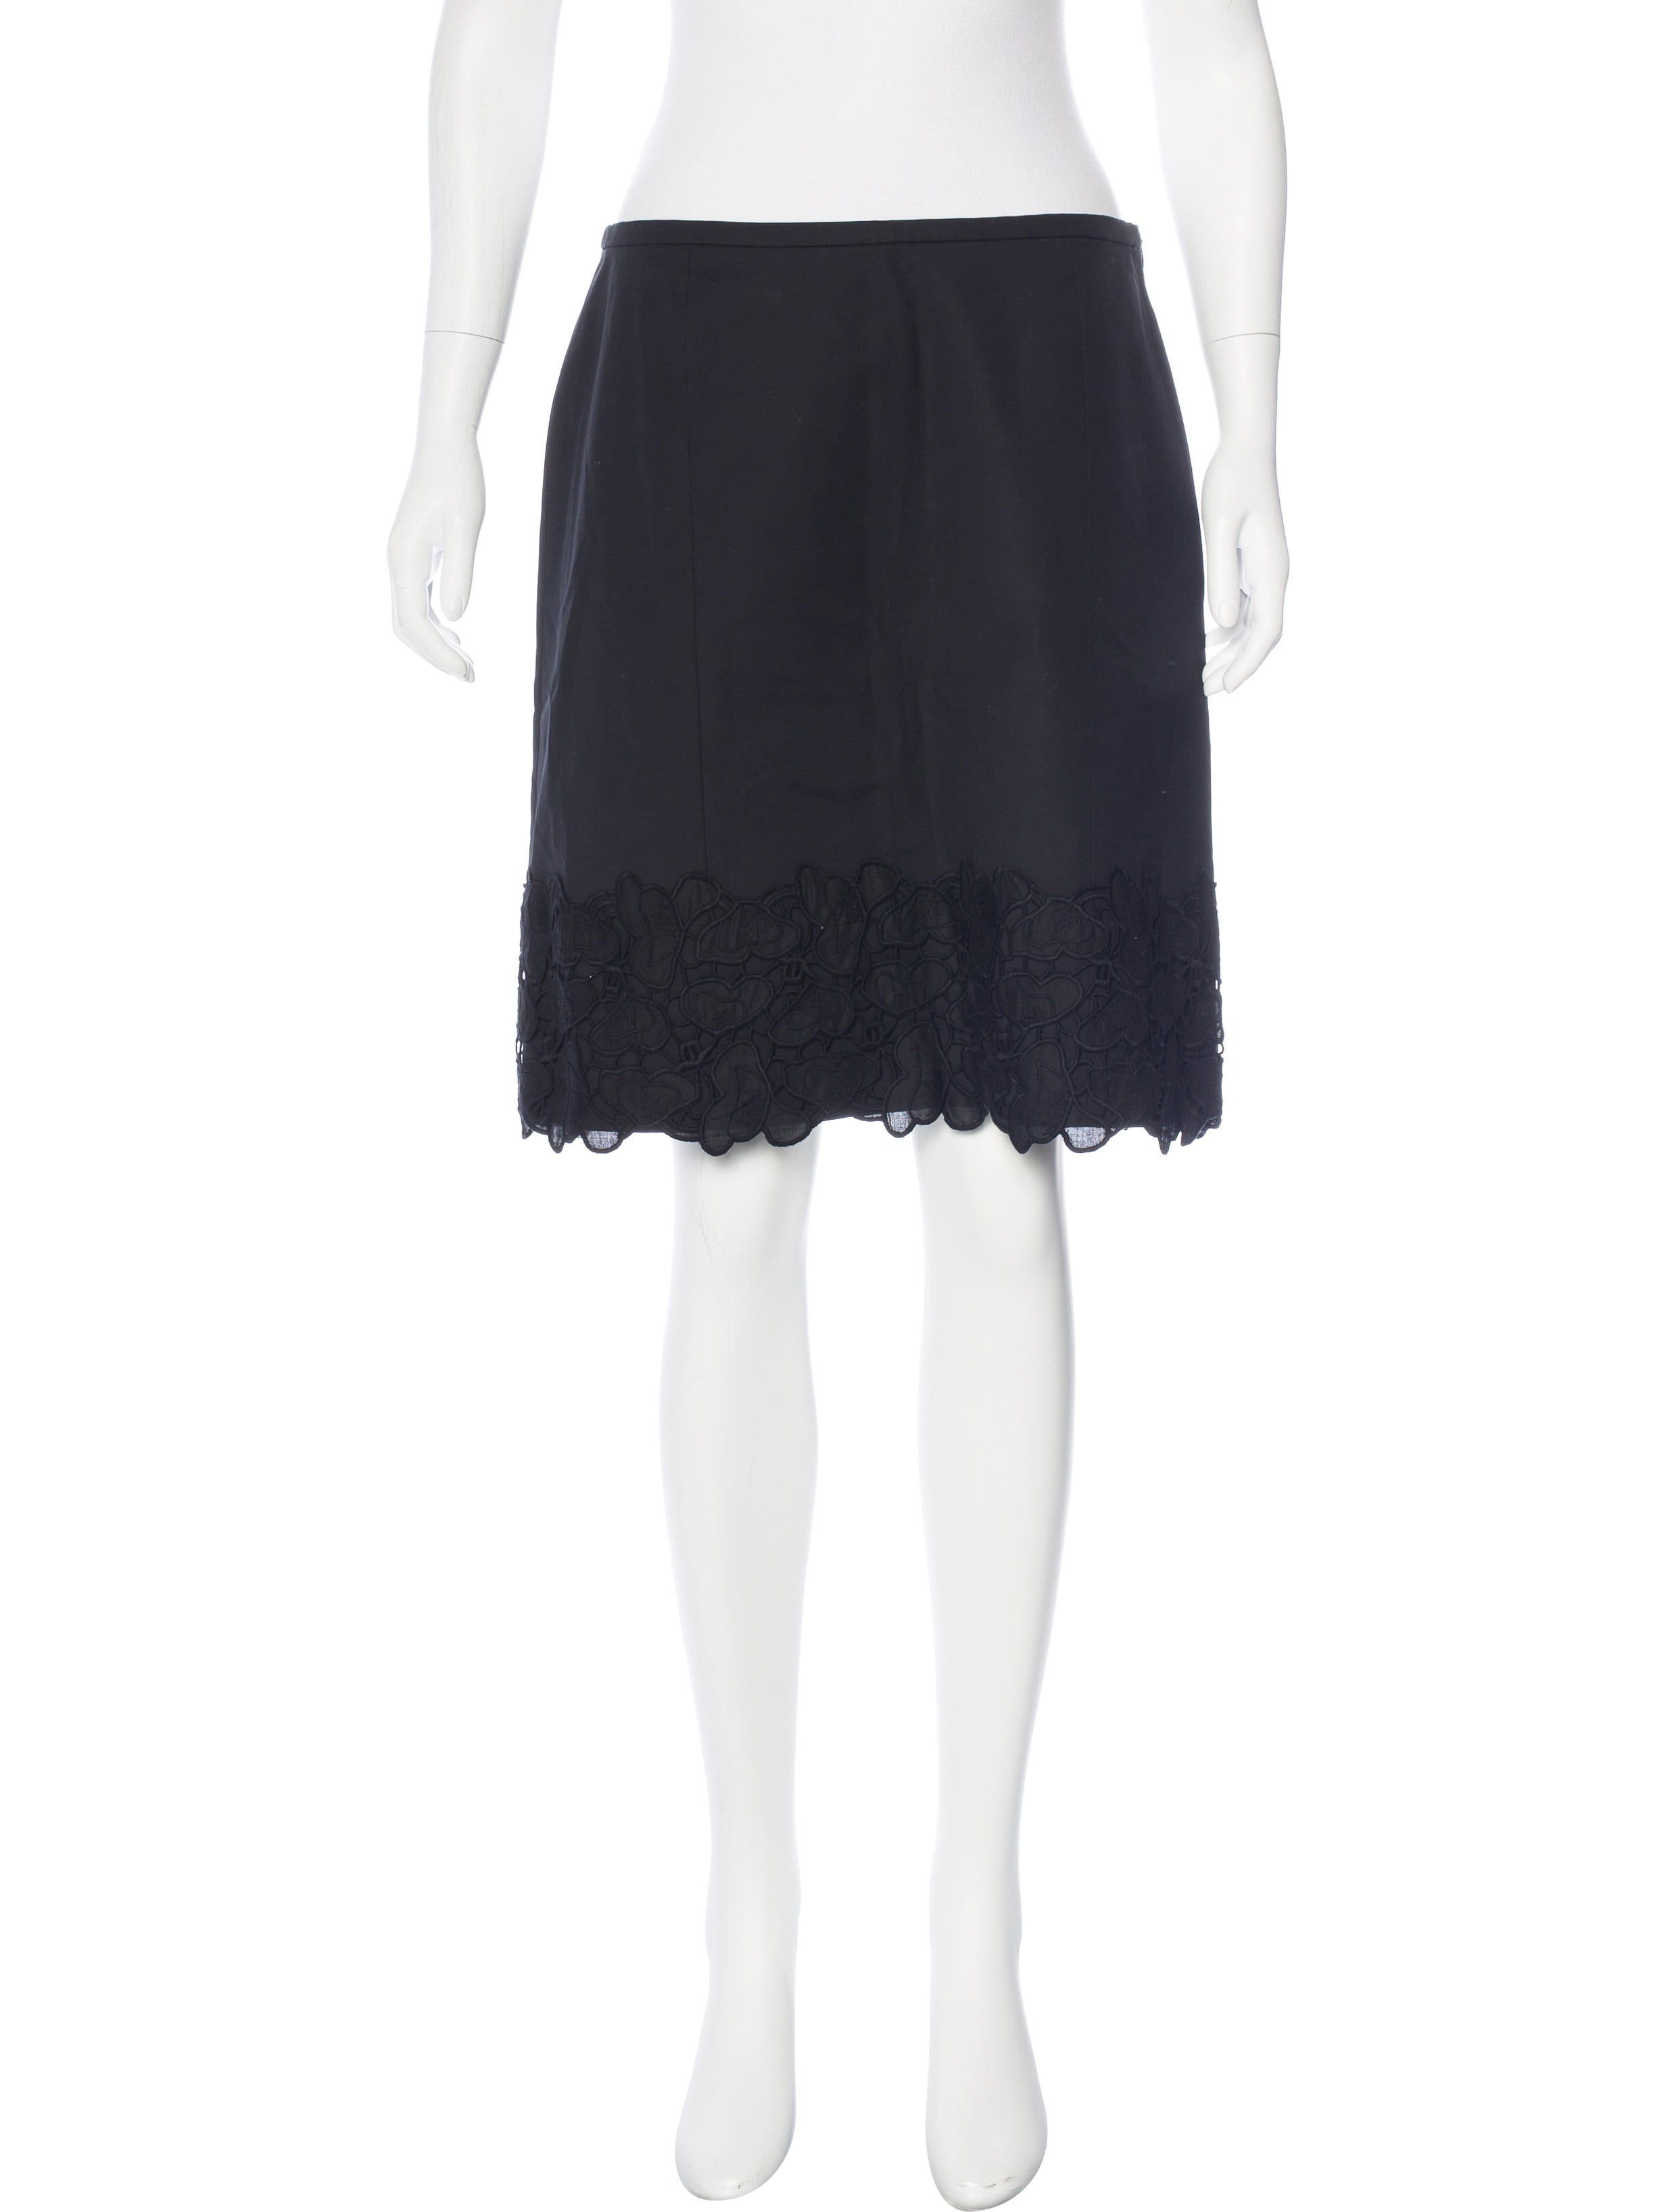 piazza sempione lace trimmed knee length skirt w tags